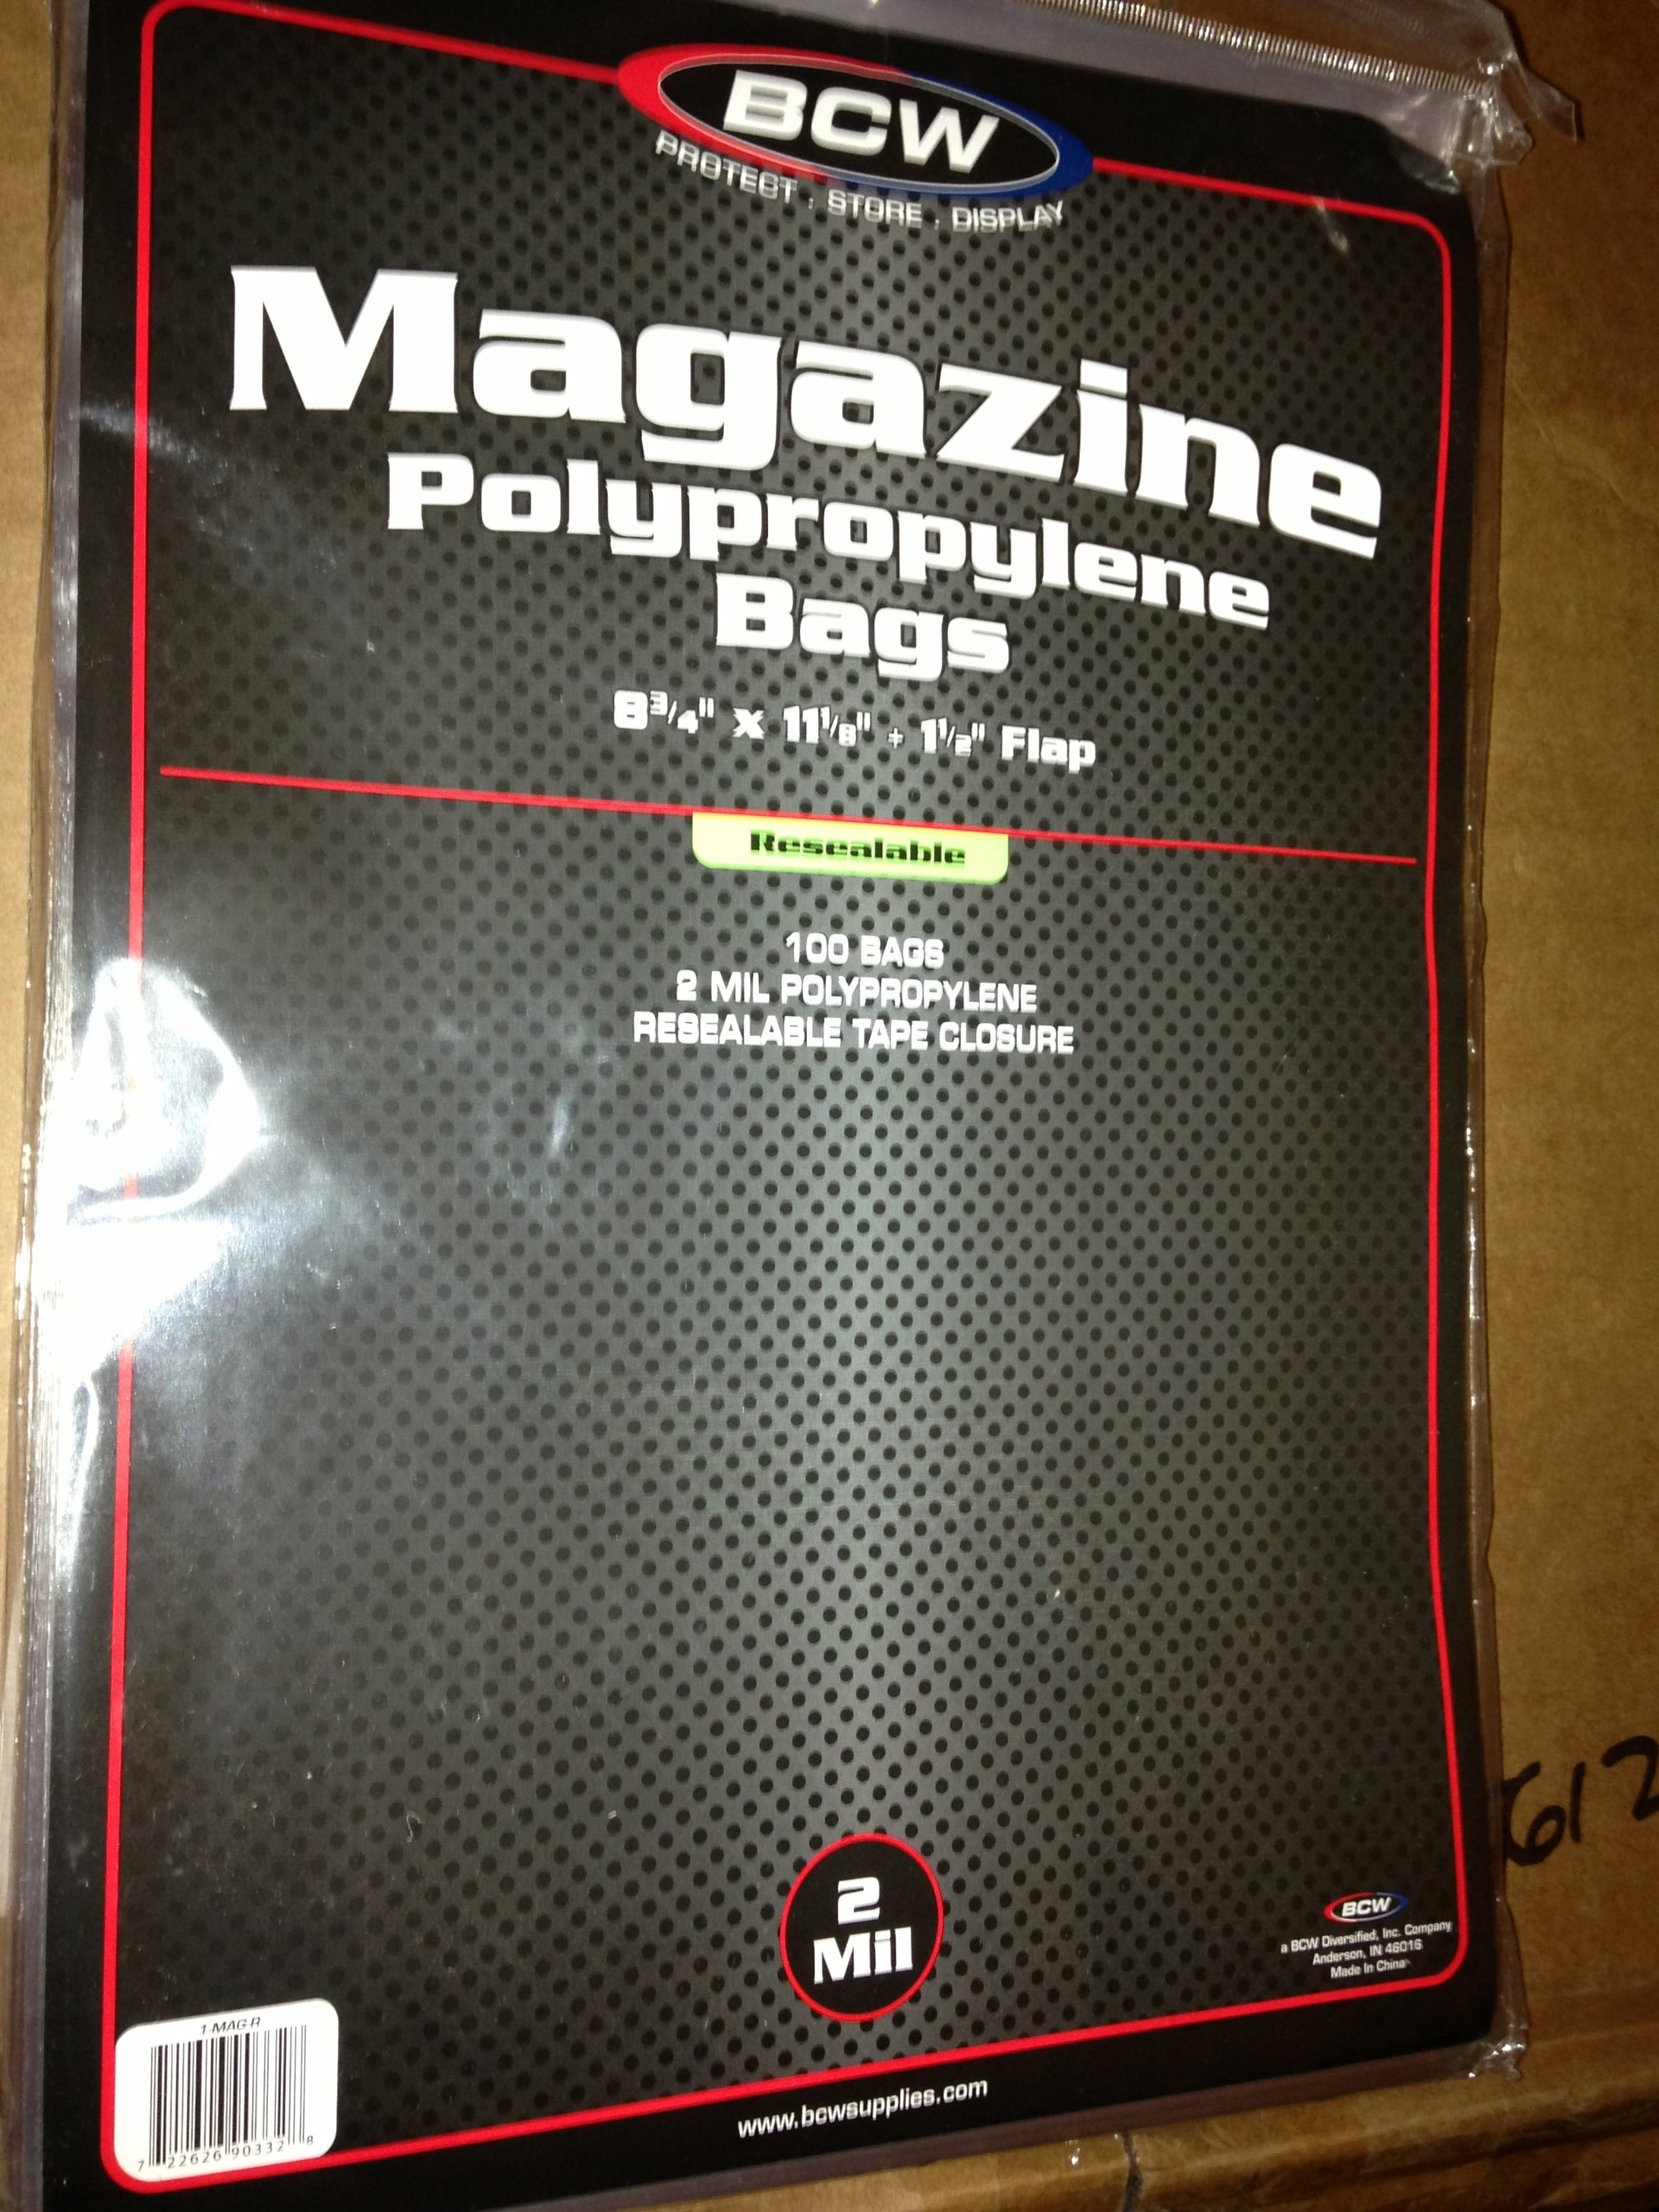 Resealable Magazine Bag (8 3/4'' X 11 1/8'') 100 count by BCW (Image #1)